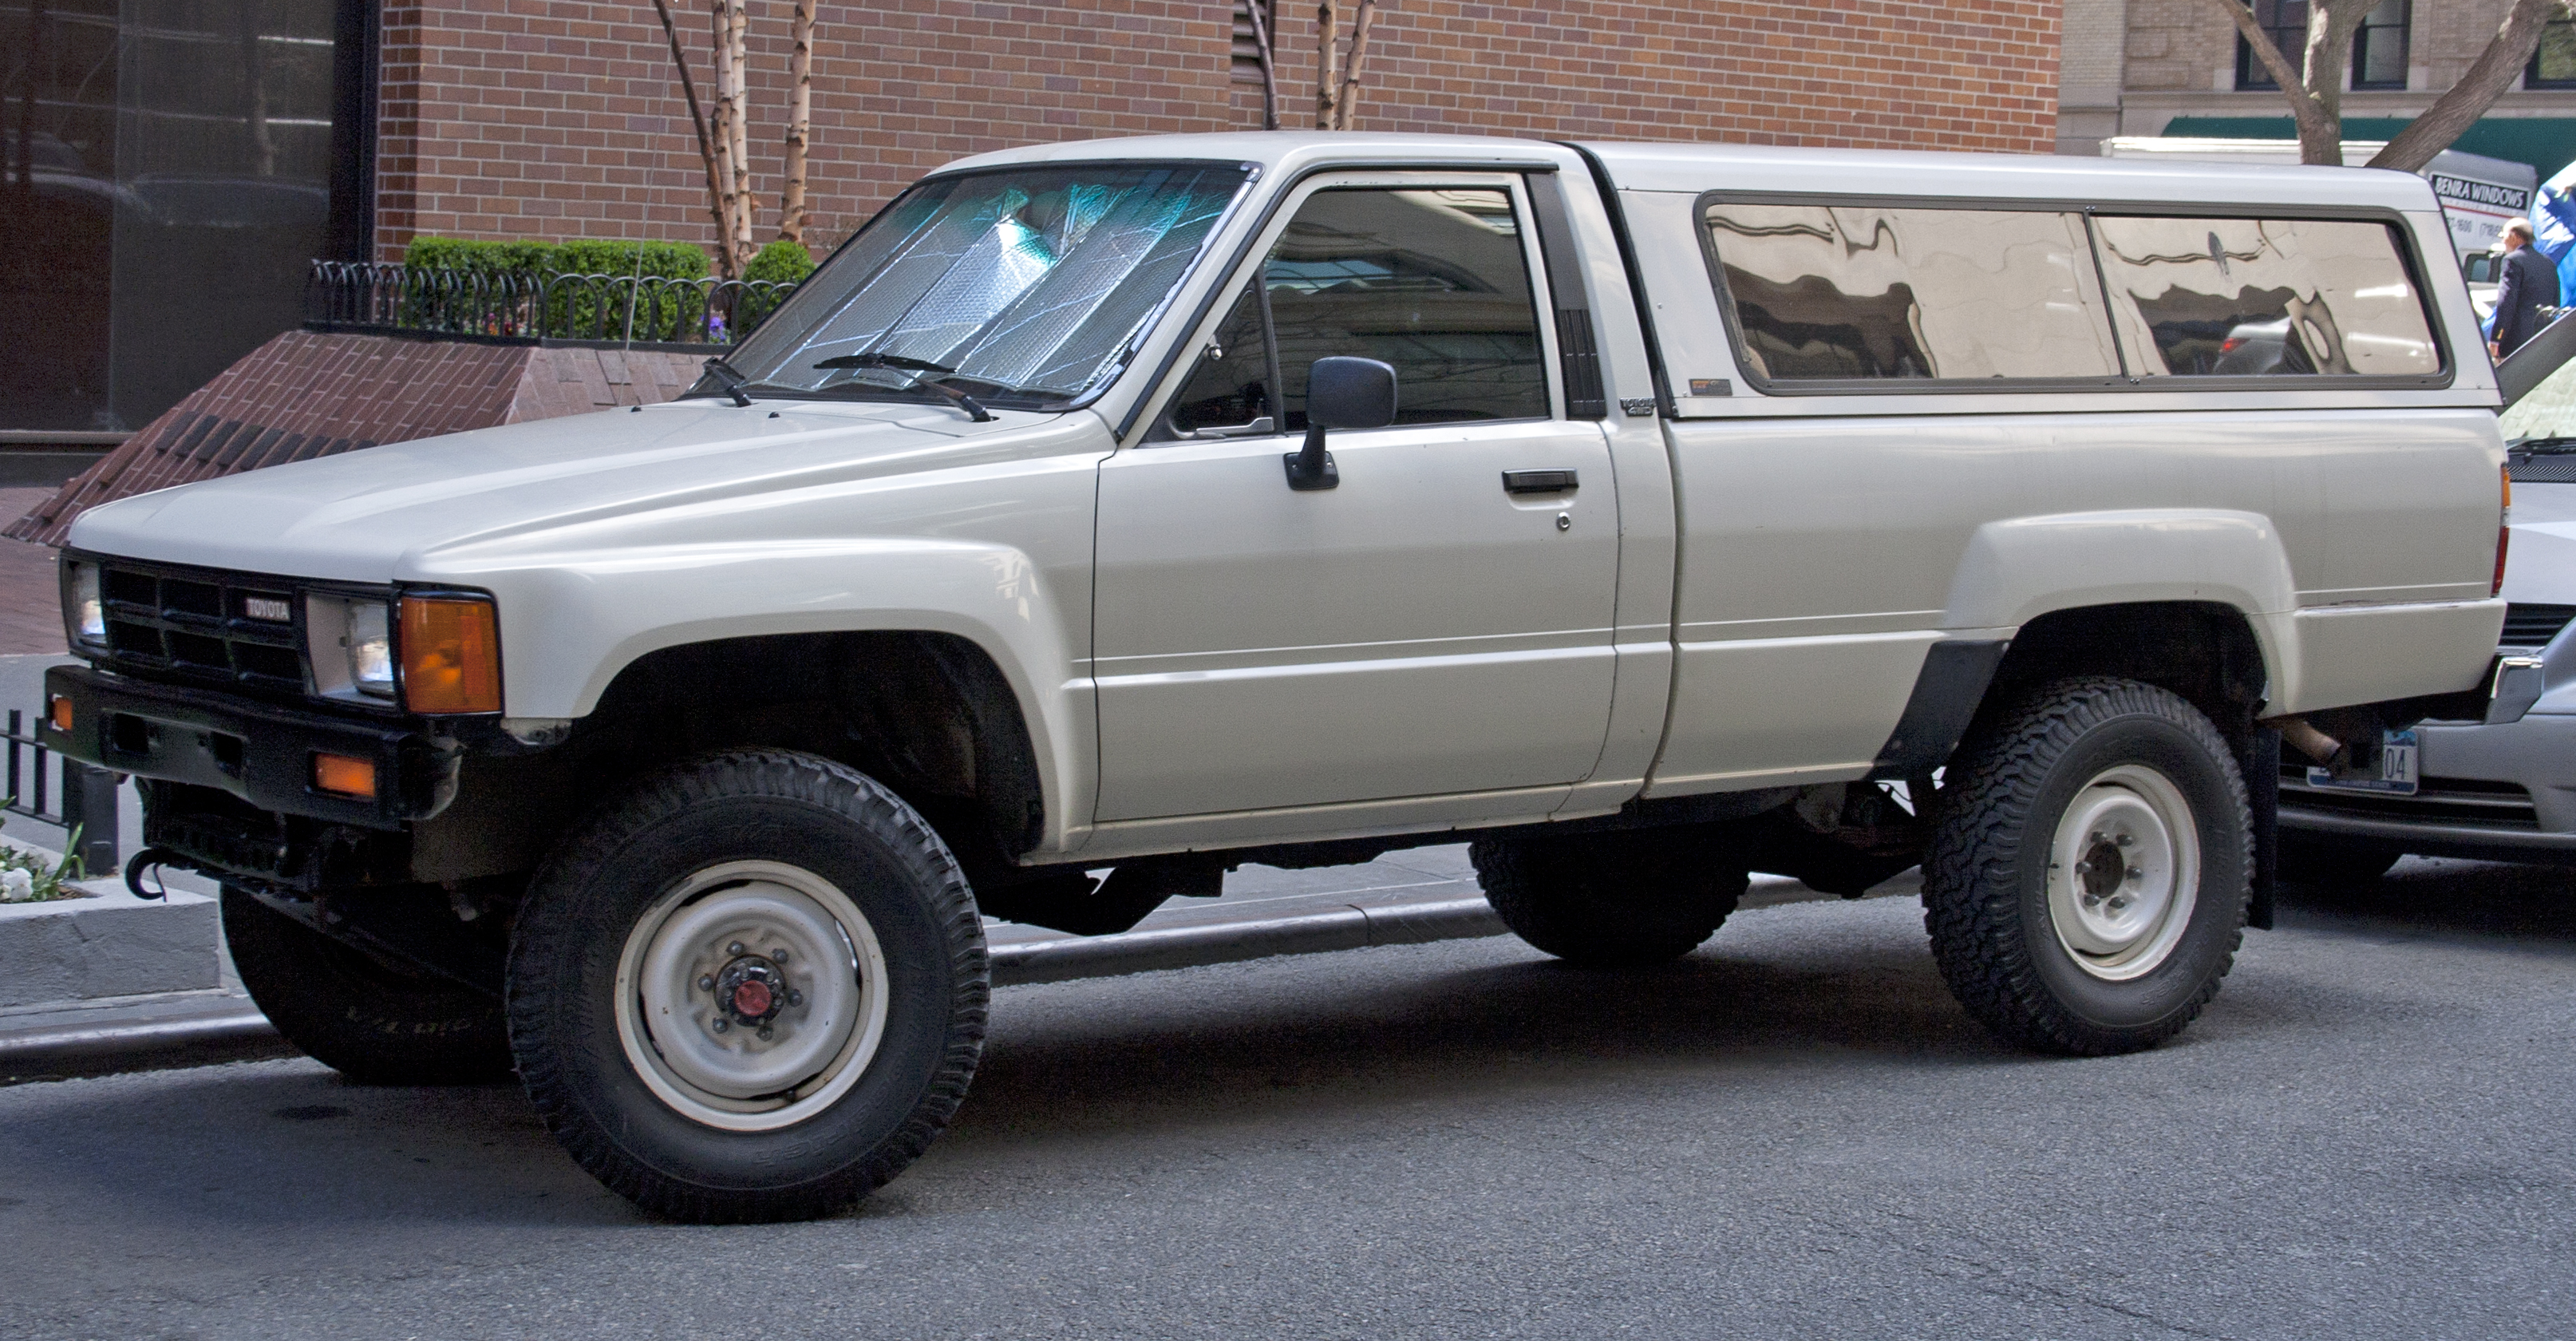 file 1987 toyota pickup long bed 4wd jpg